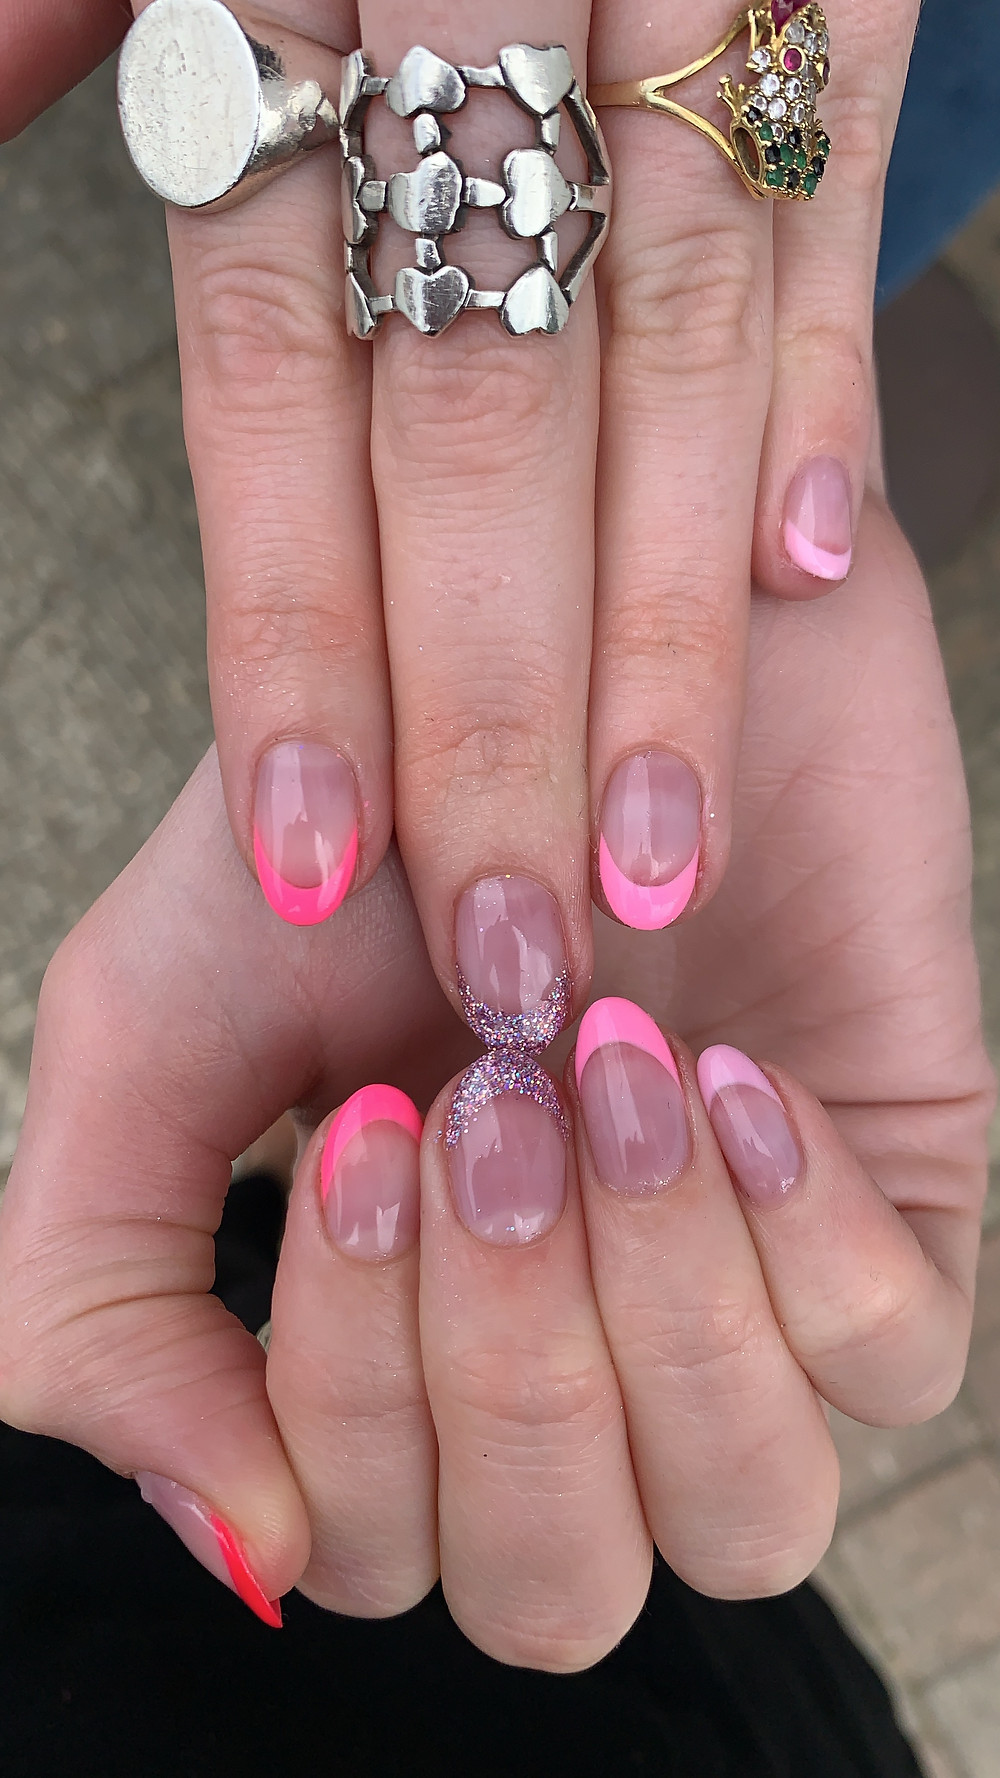 pink french manicure by LG Nails London